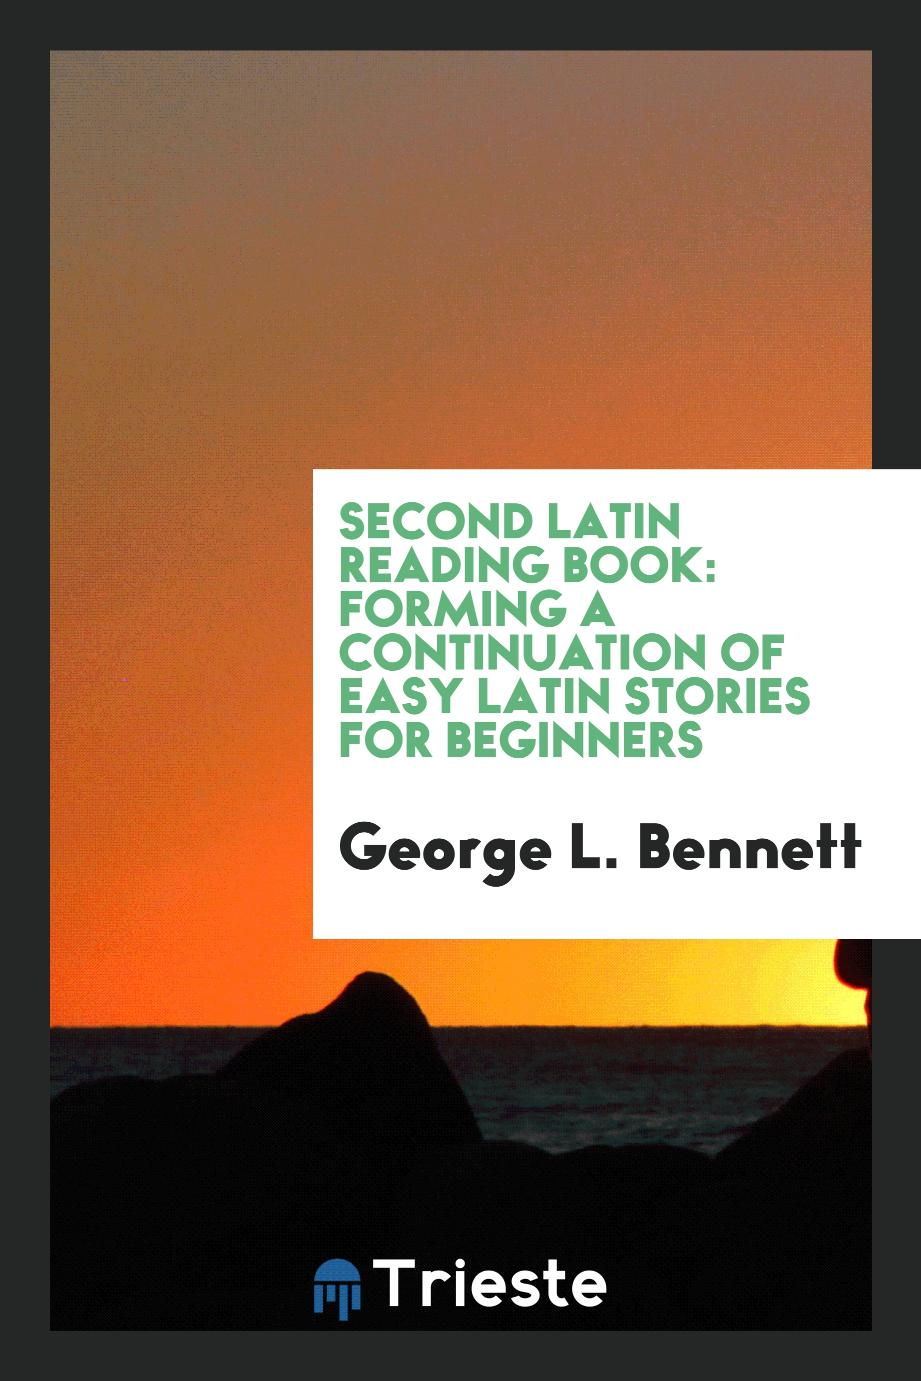 Second Latin reading book: forming a continuation of Easy Latin stories for beginners